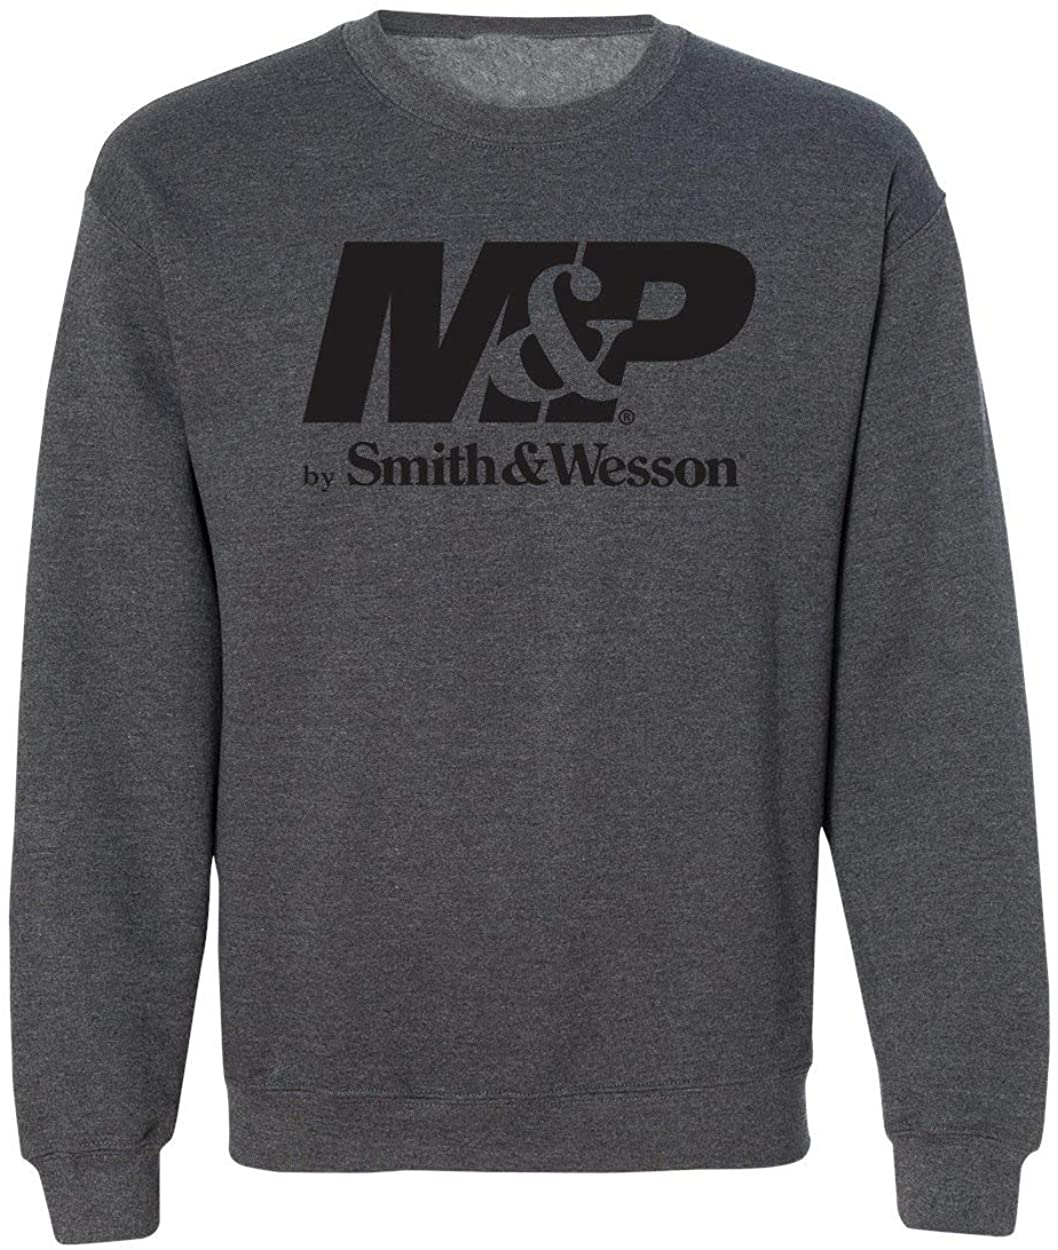 M&P Smith & Wesson Authentic Logo Crew Neck Sweatshirt - Officially Licensed